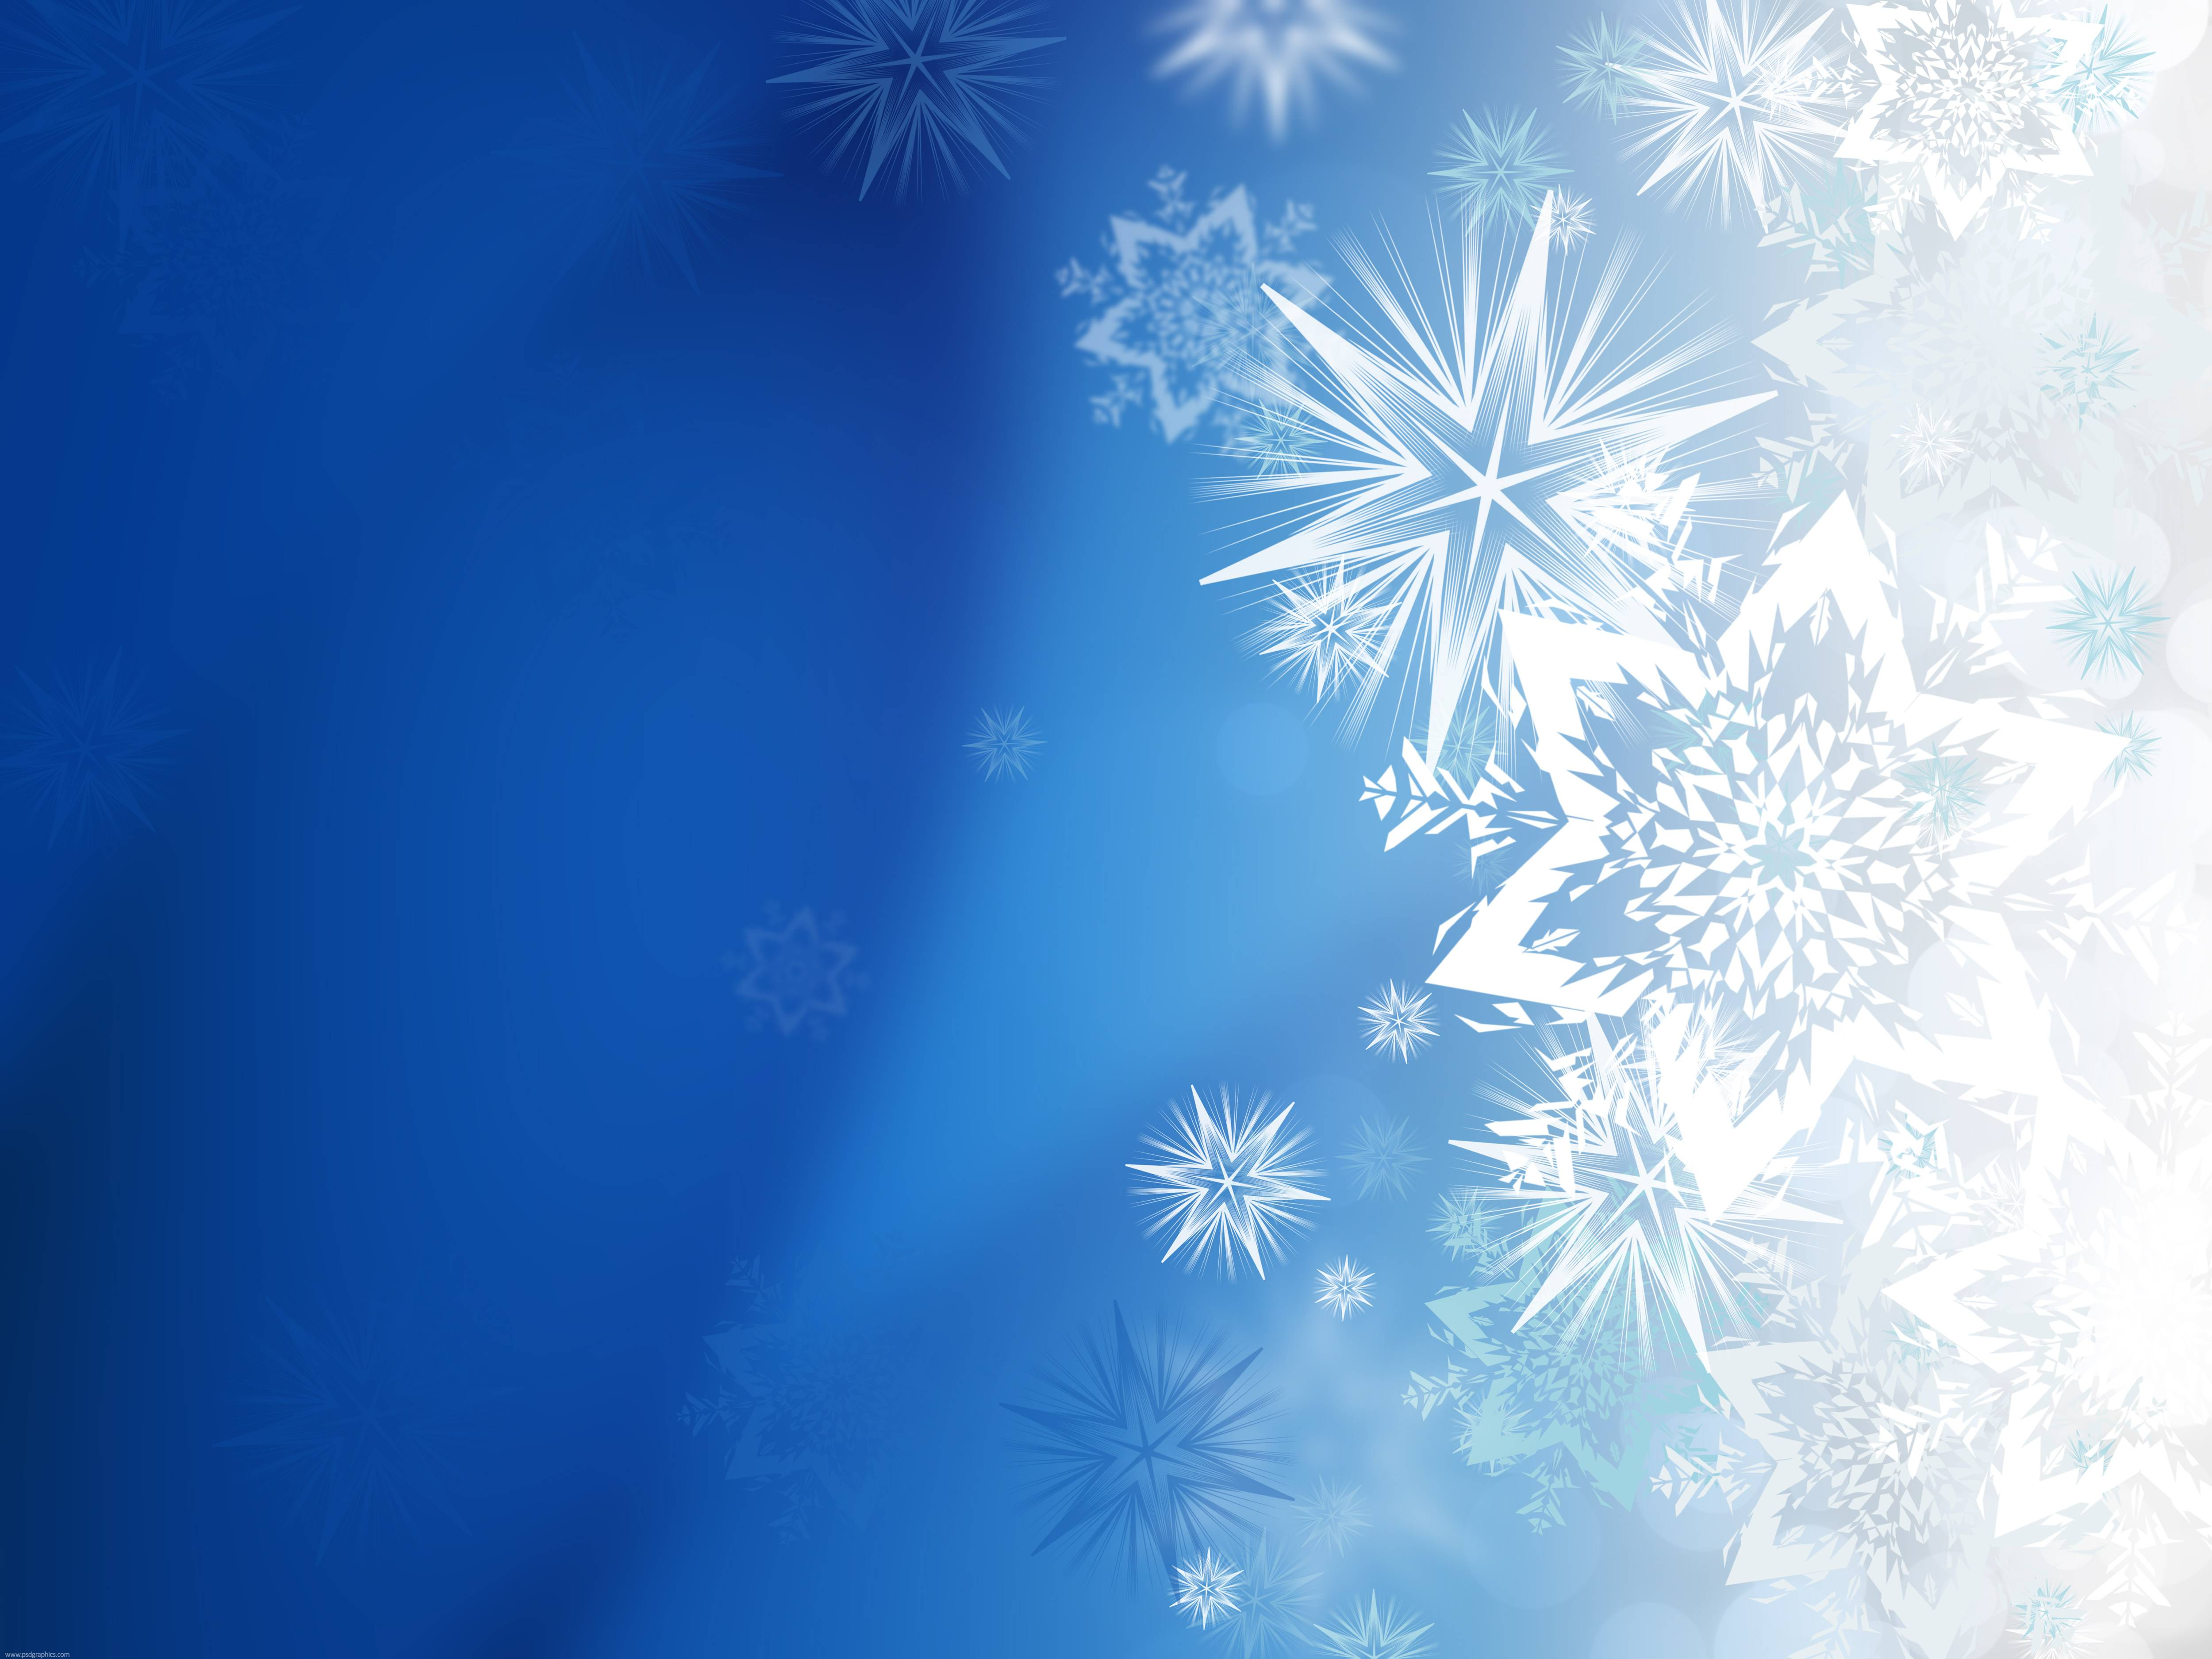 73] Winter Background Images on WallpaperSafari 5000x3750